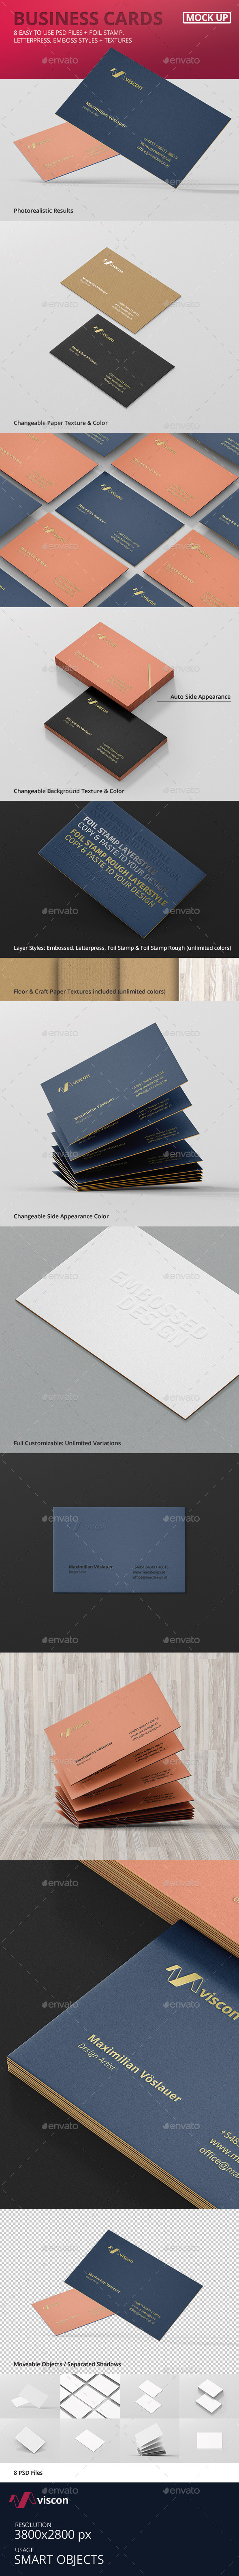 GraphicRiver Business Cards Mock-Ups 10963970